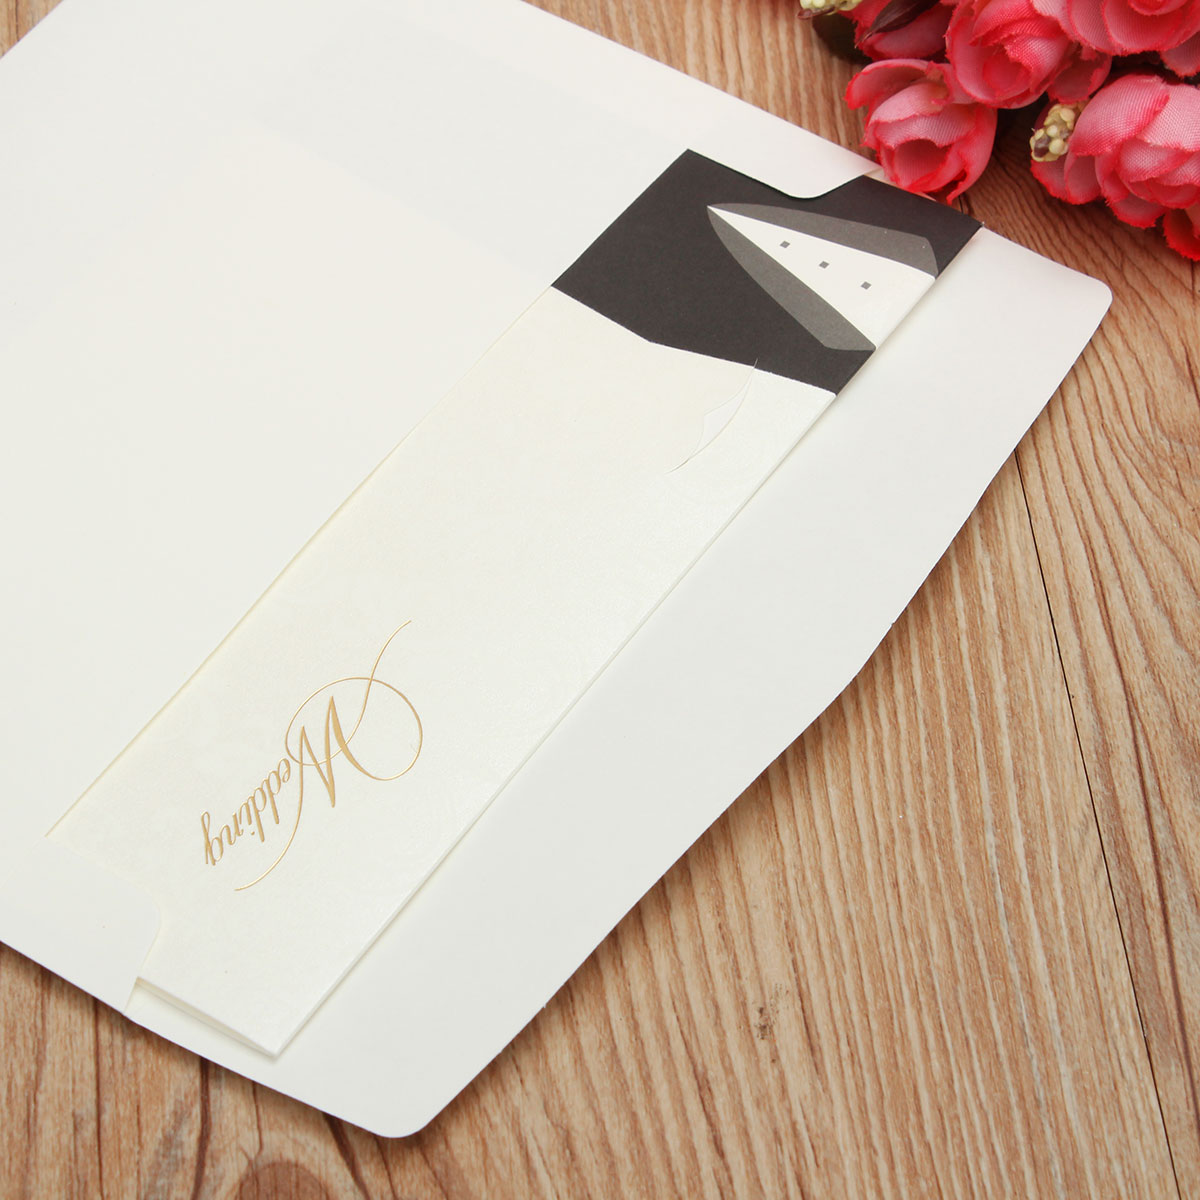 10Pcs Bride Groom Printed Wedding Evening Invitations Cards Personalized Envelopes Seals